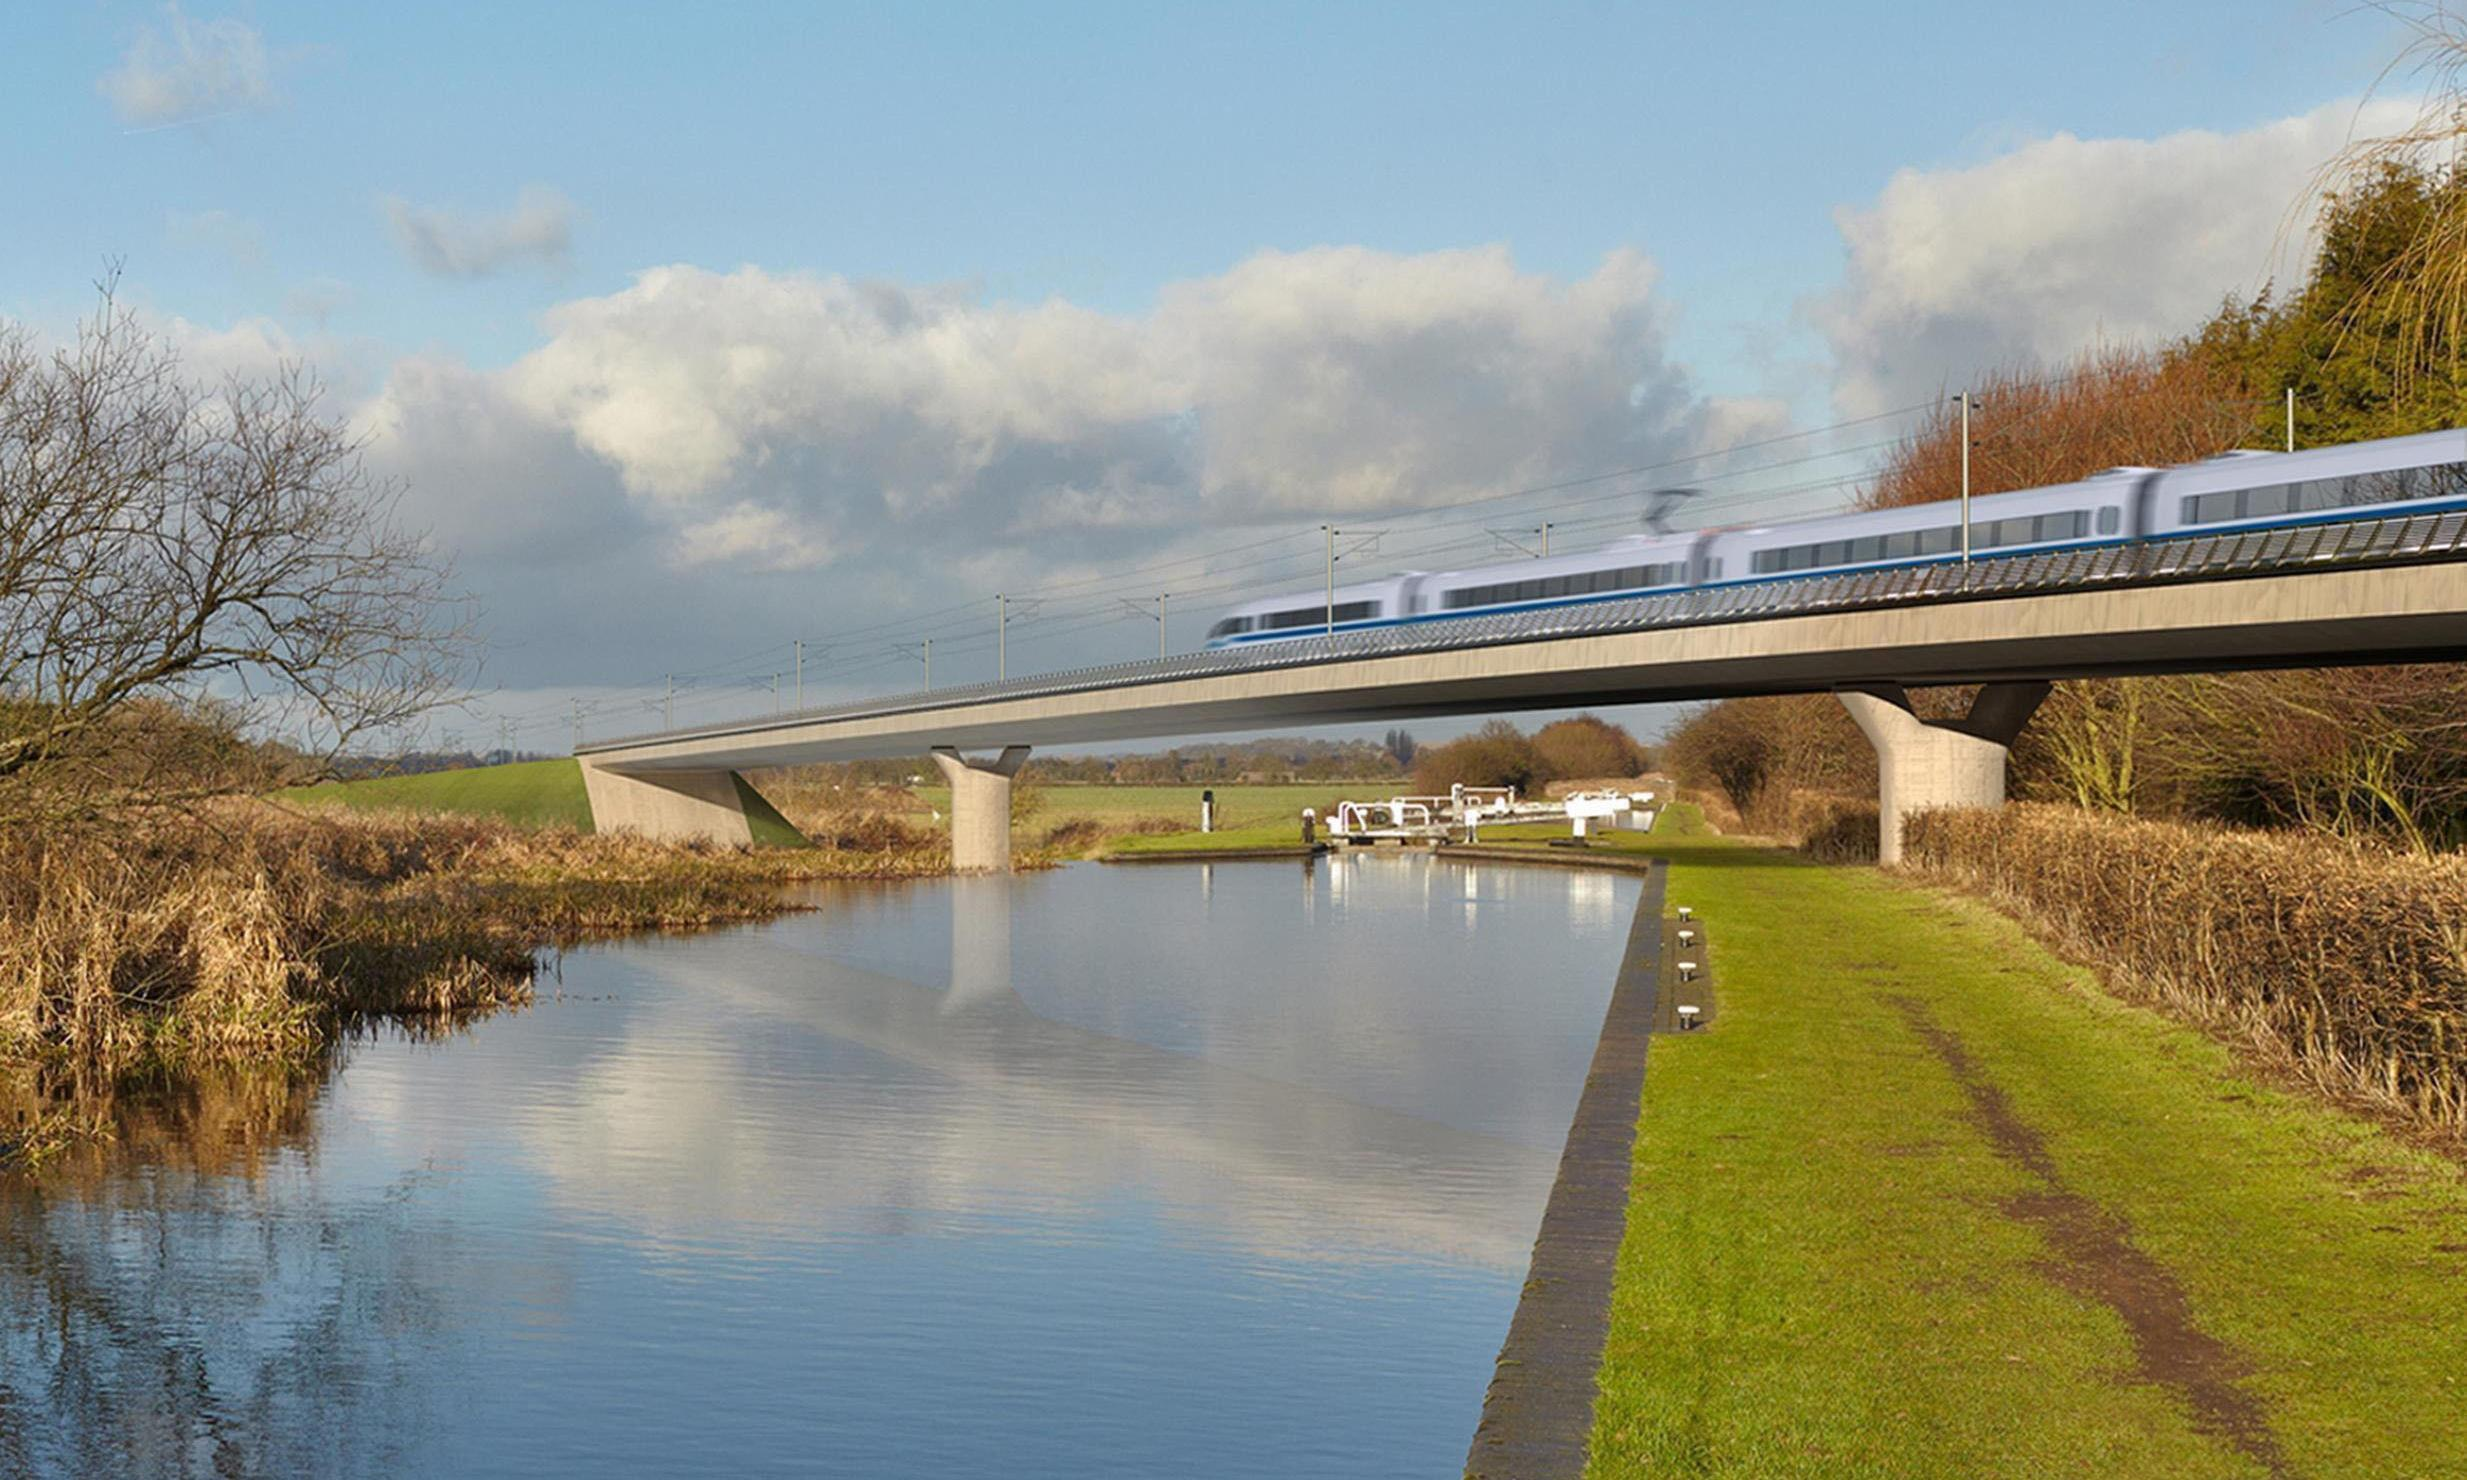 HS2 would widen UK 'north-south' divide and should be axed, says report